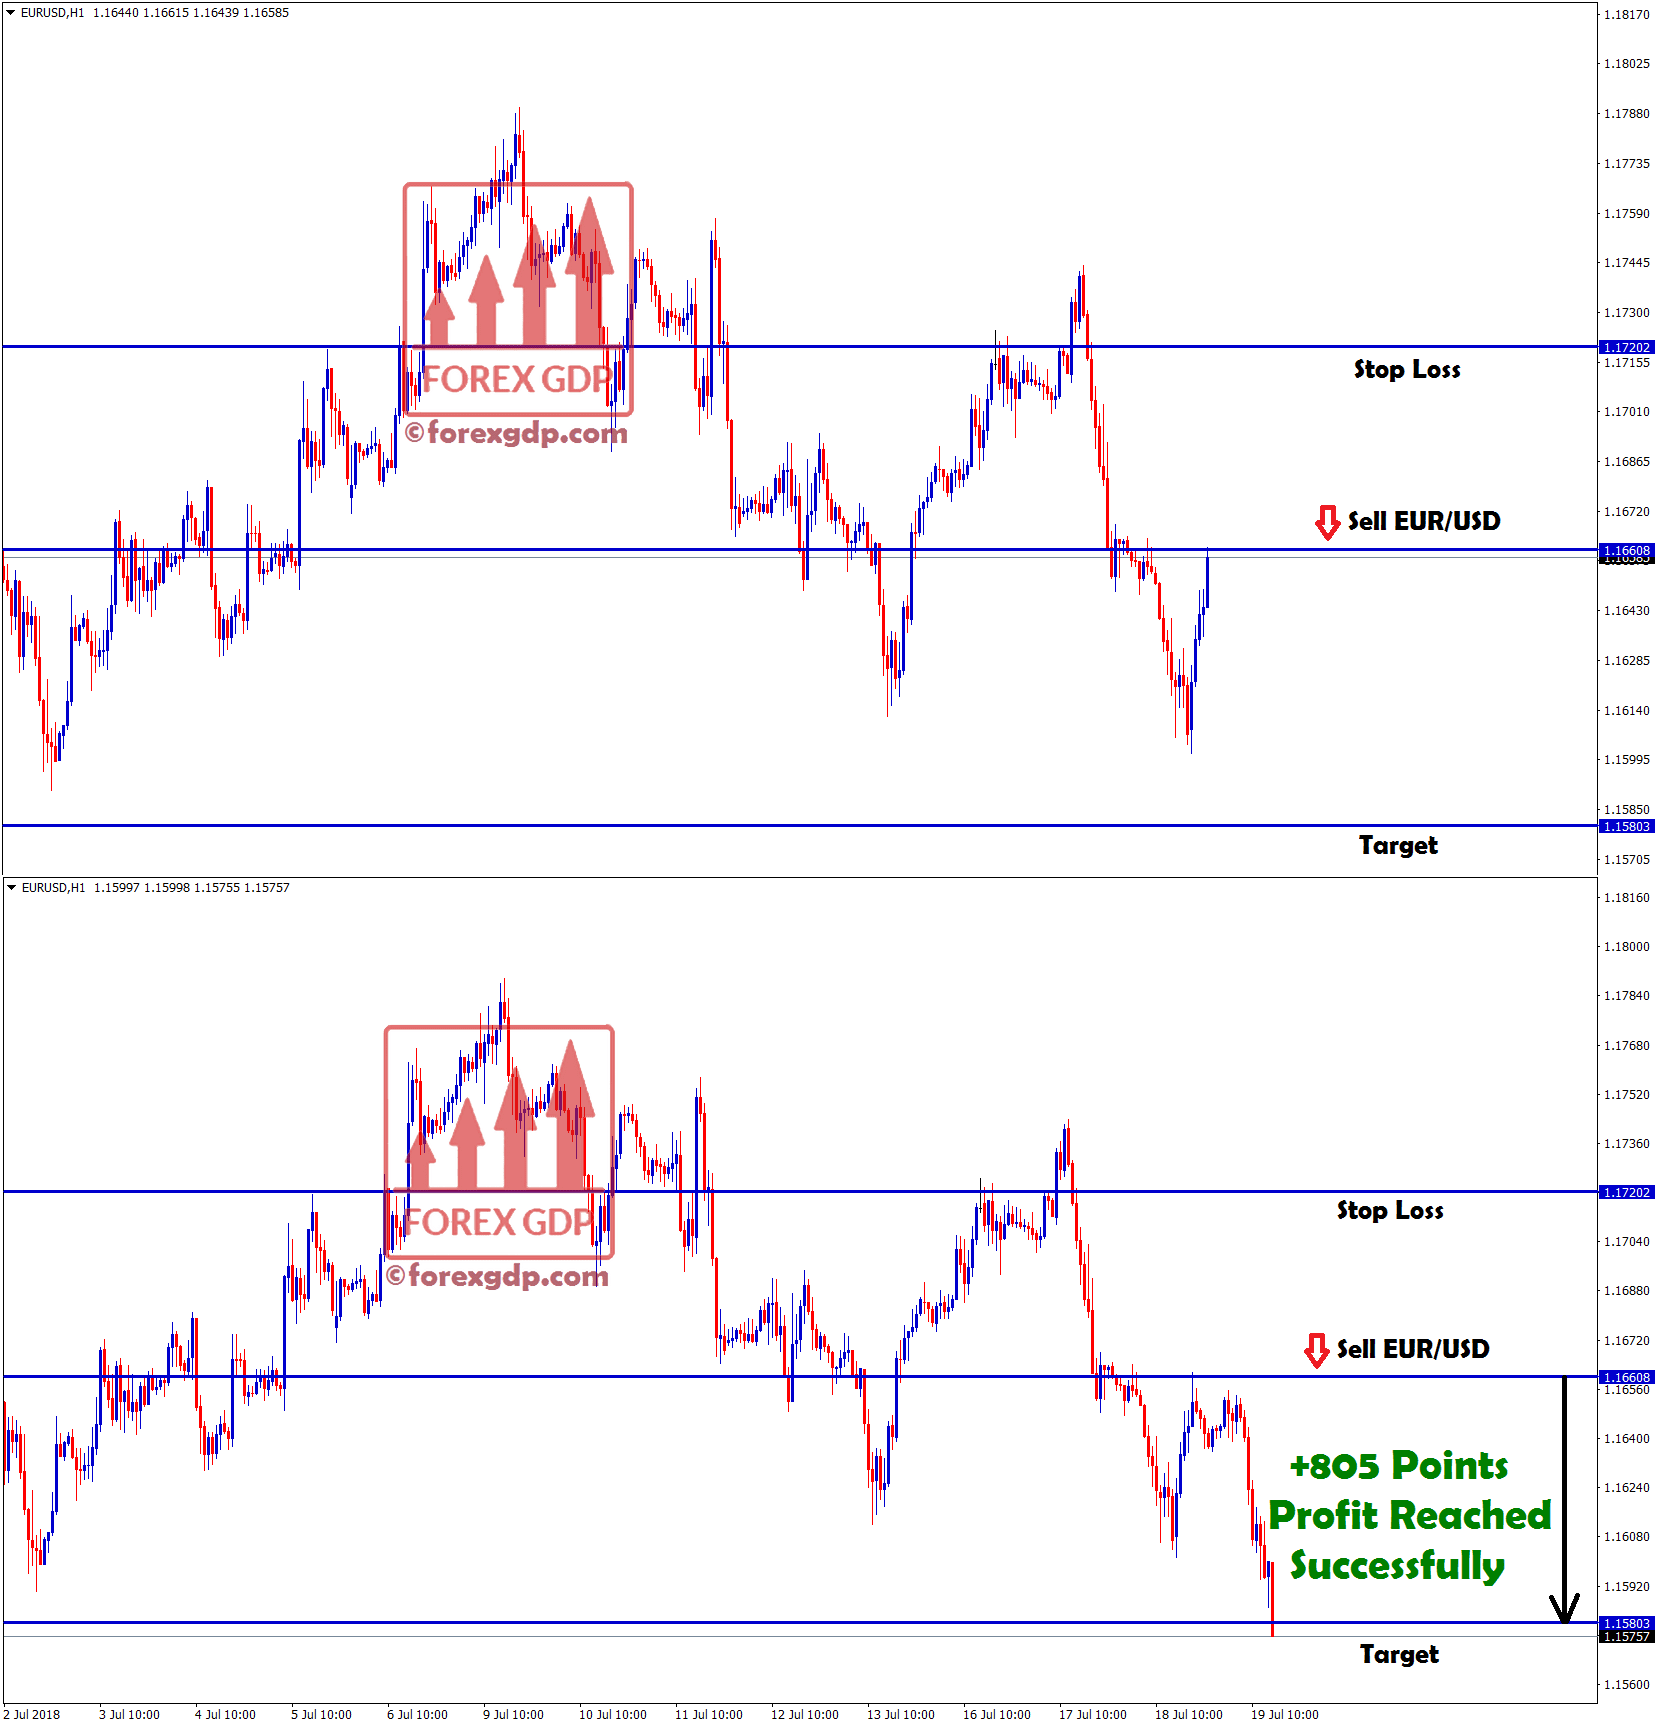 +805 points profit hits in eur usd sell